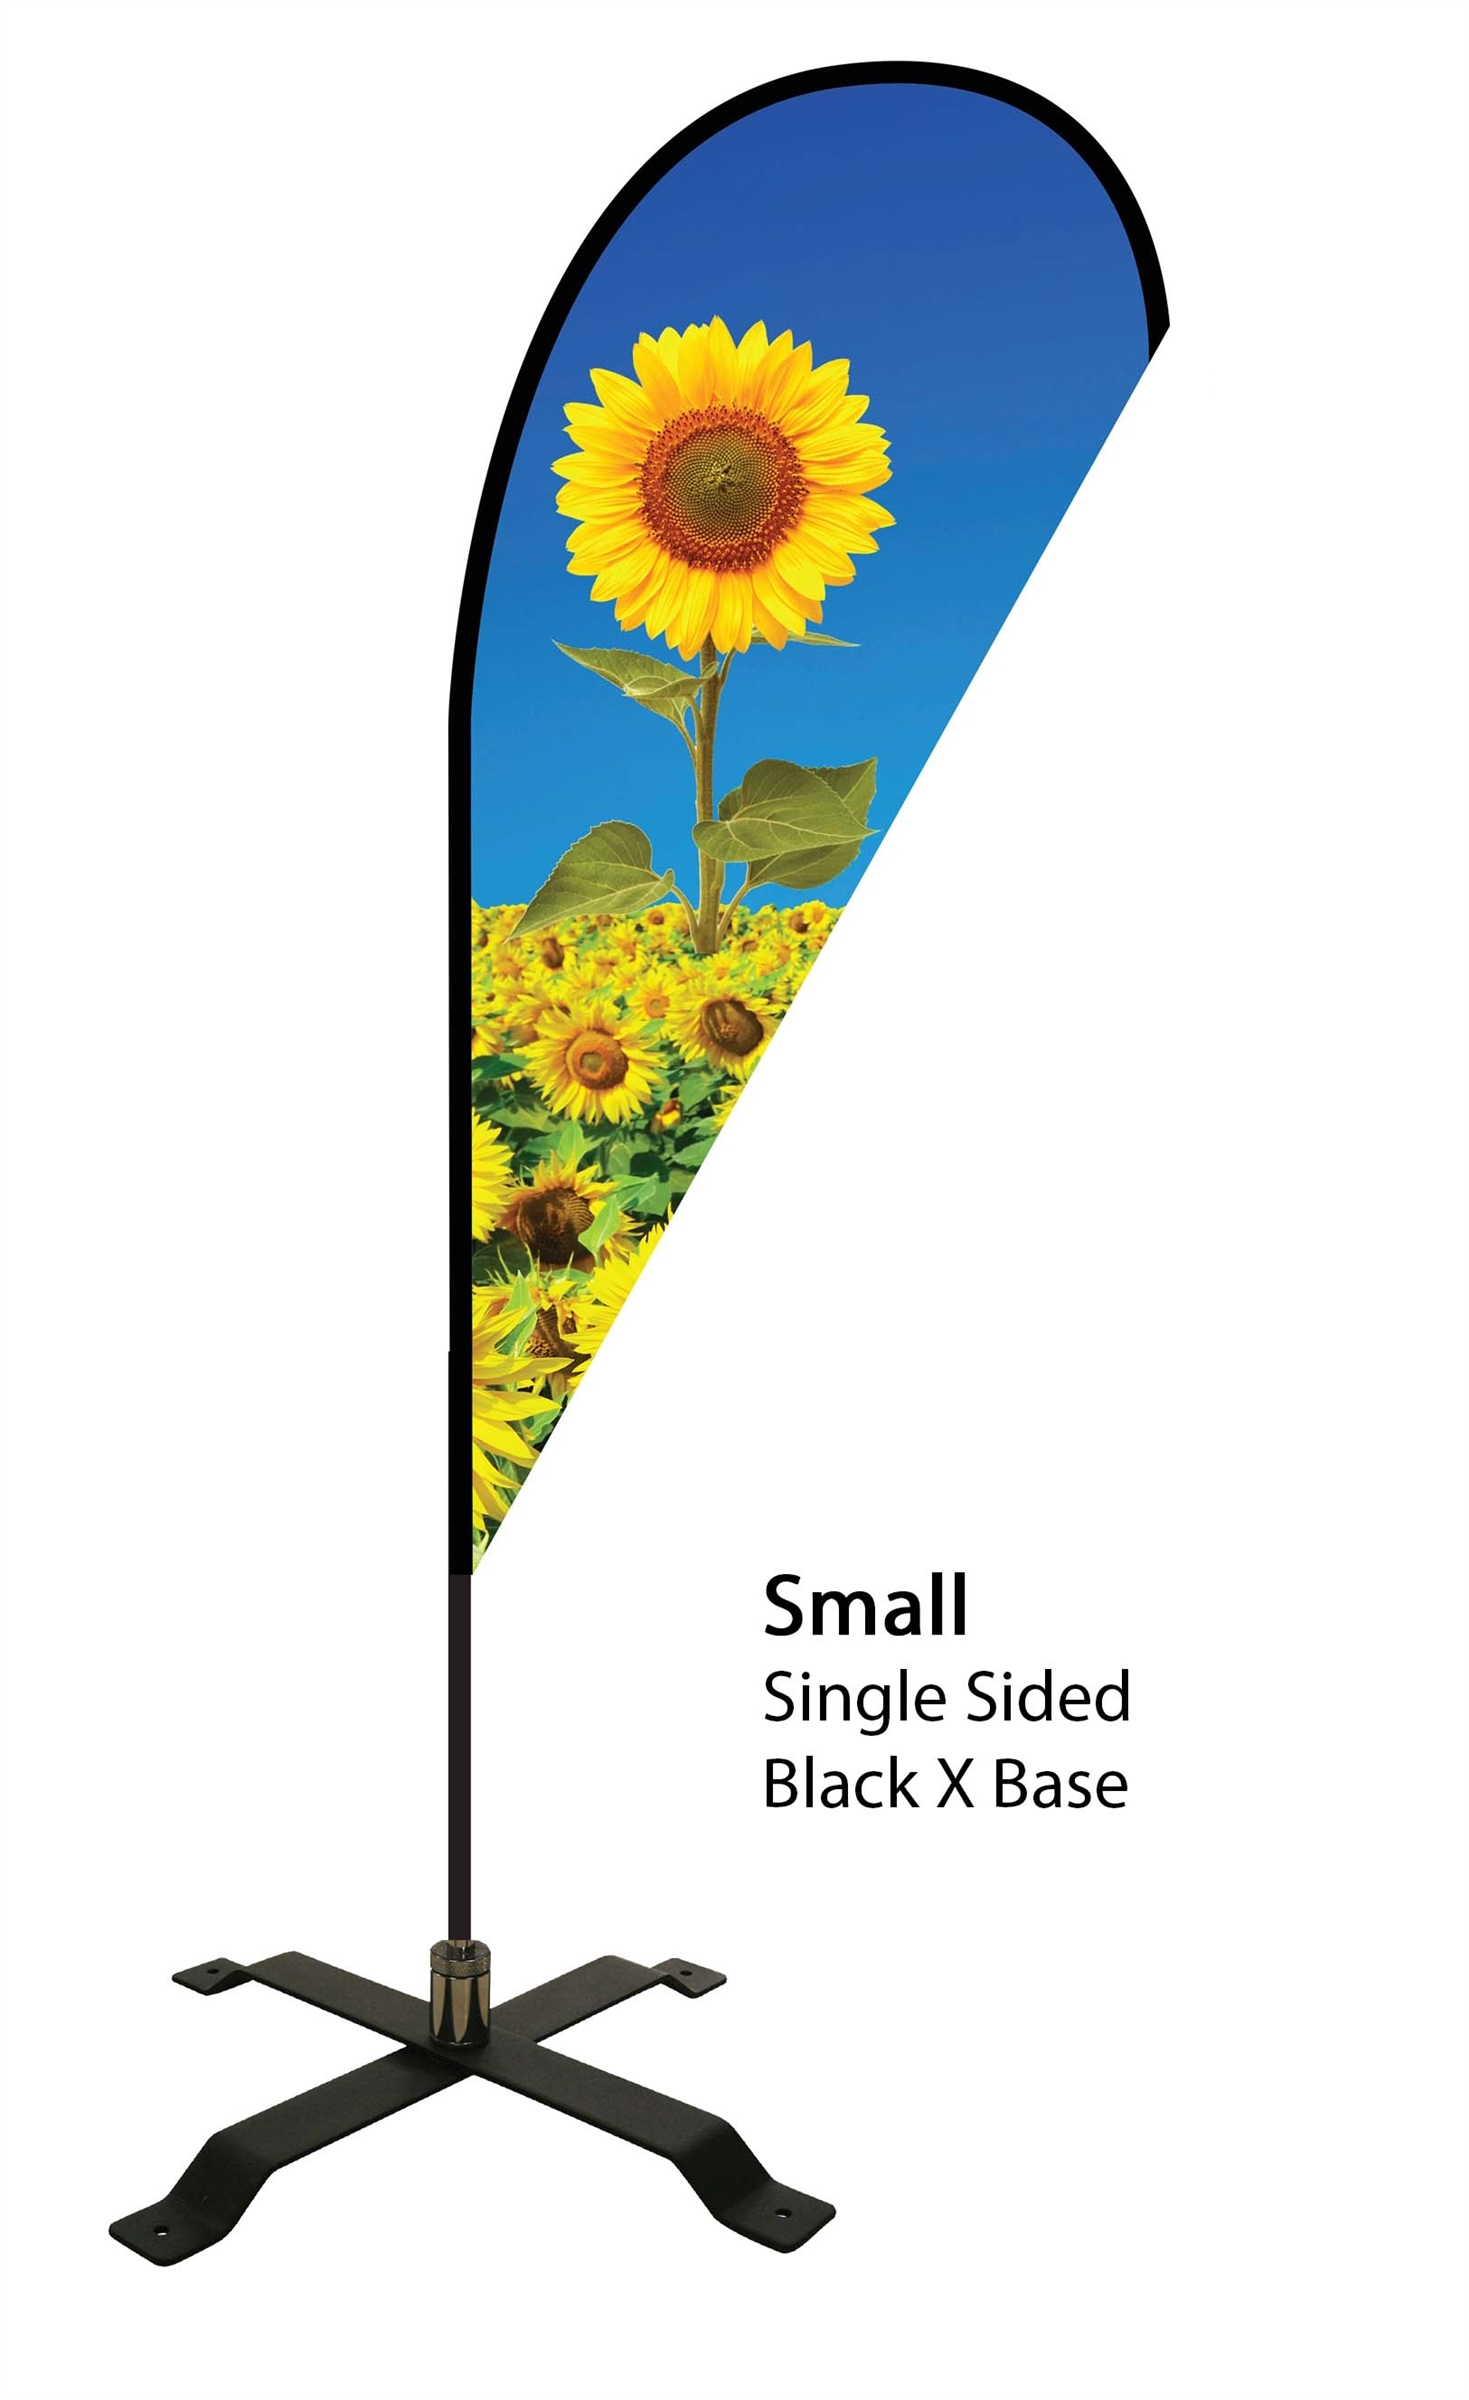 Teardrop Flag 7' Premium Single-Sided With Black X Base (Small)